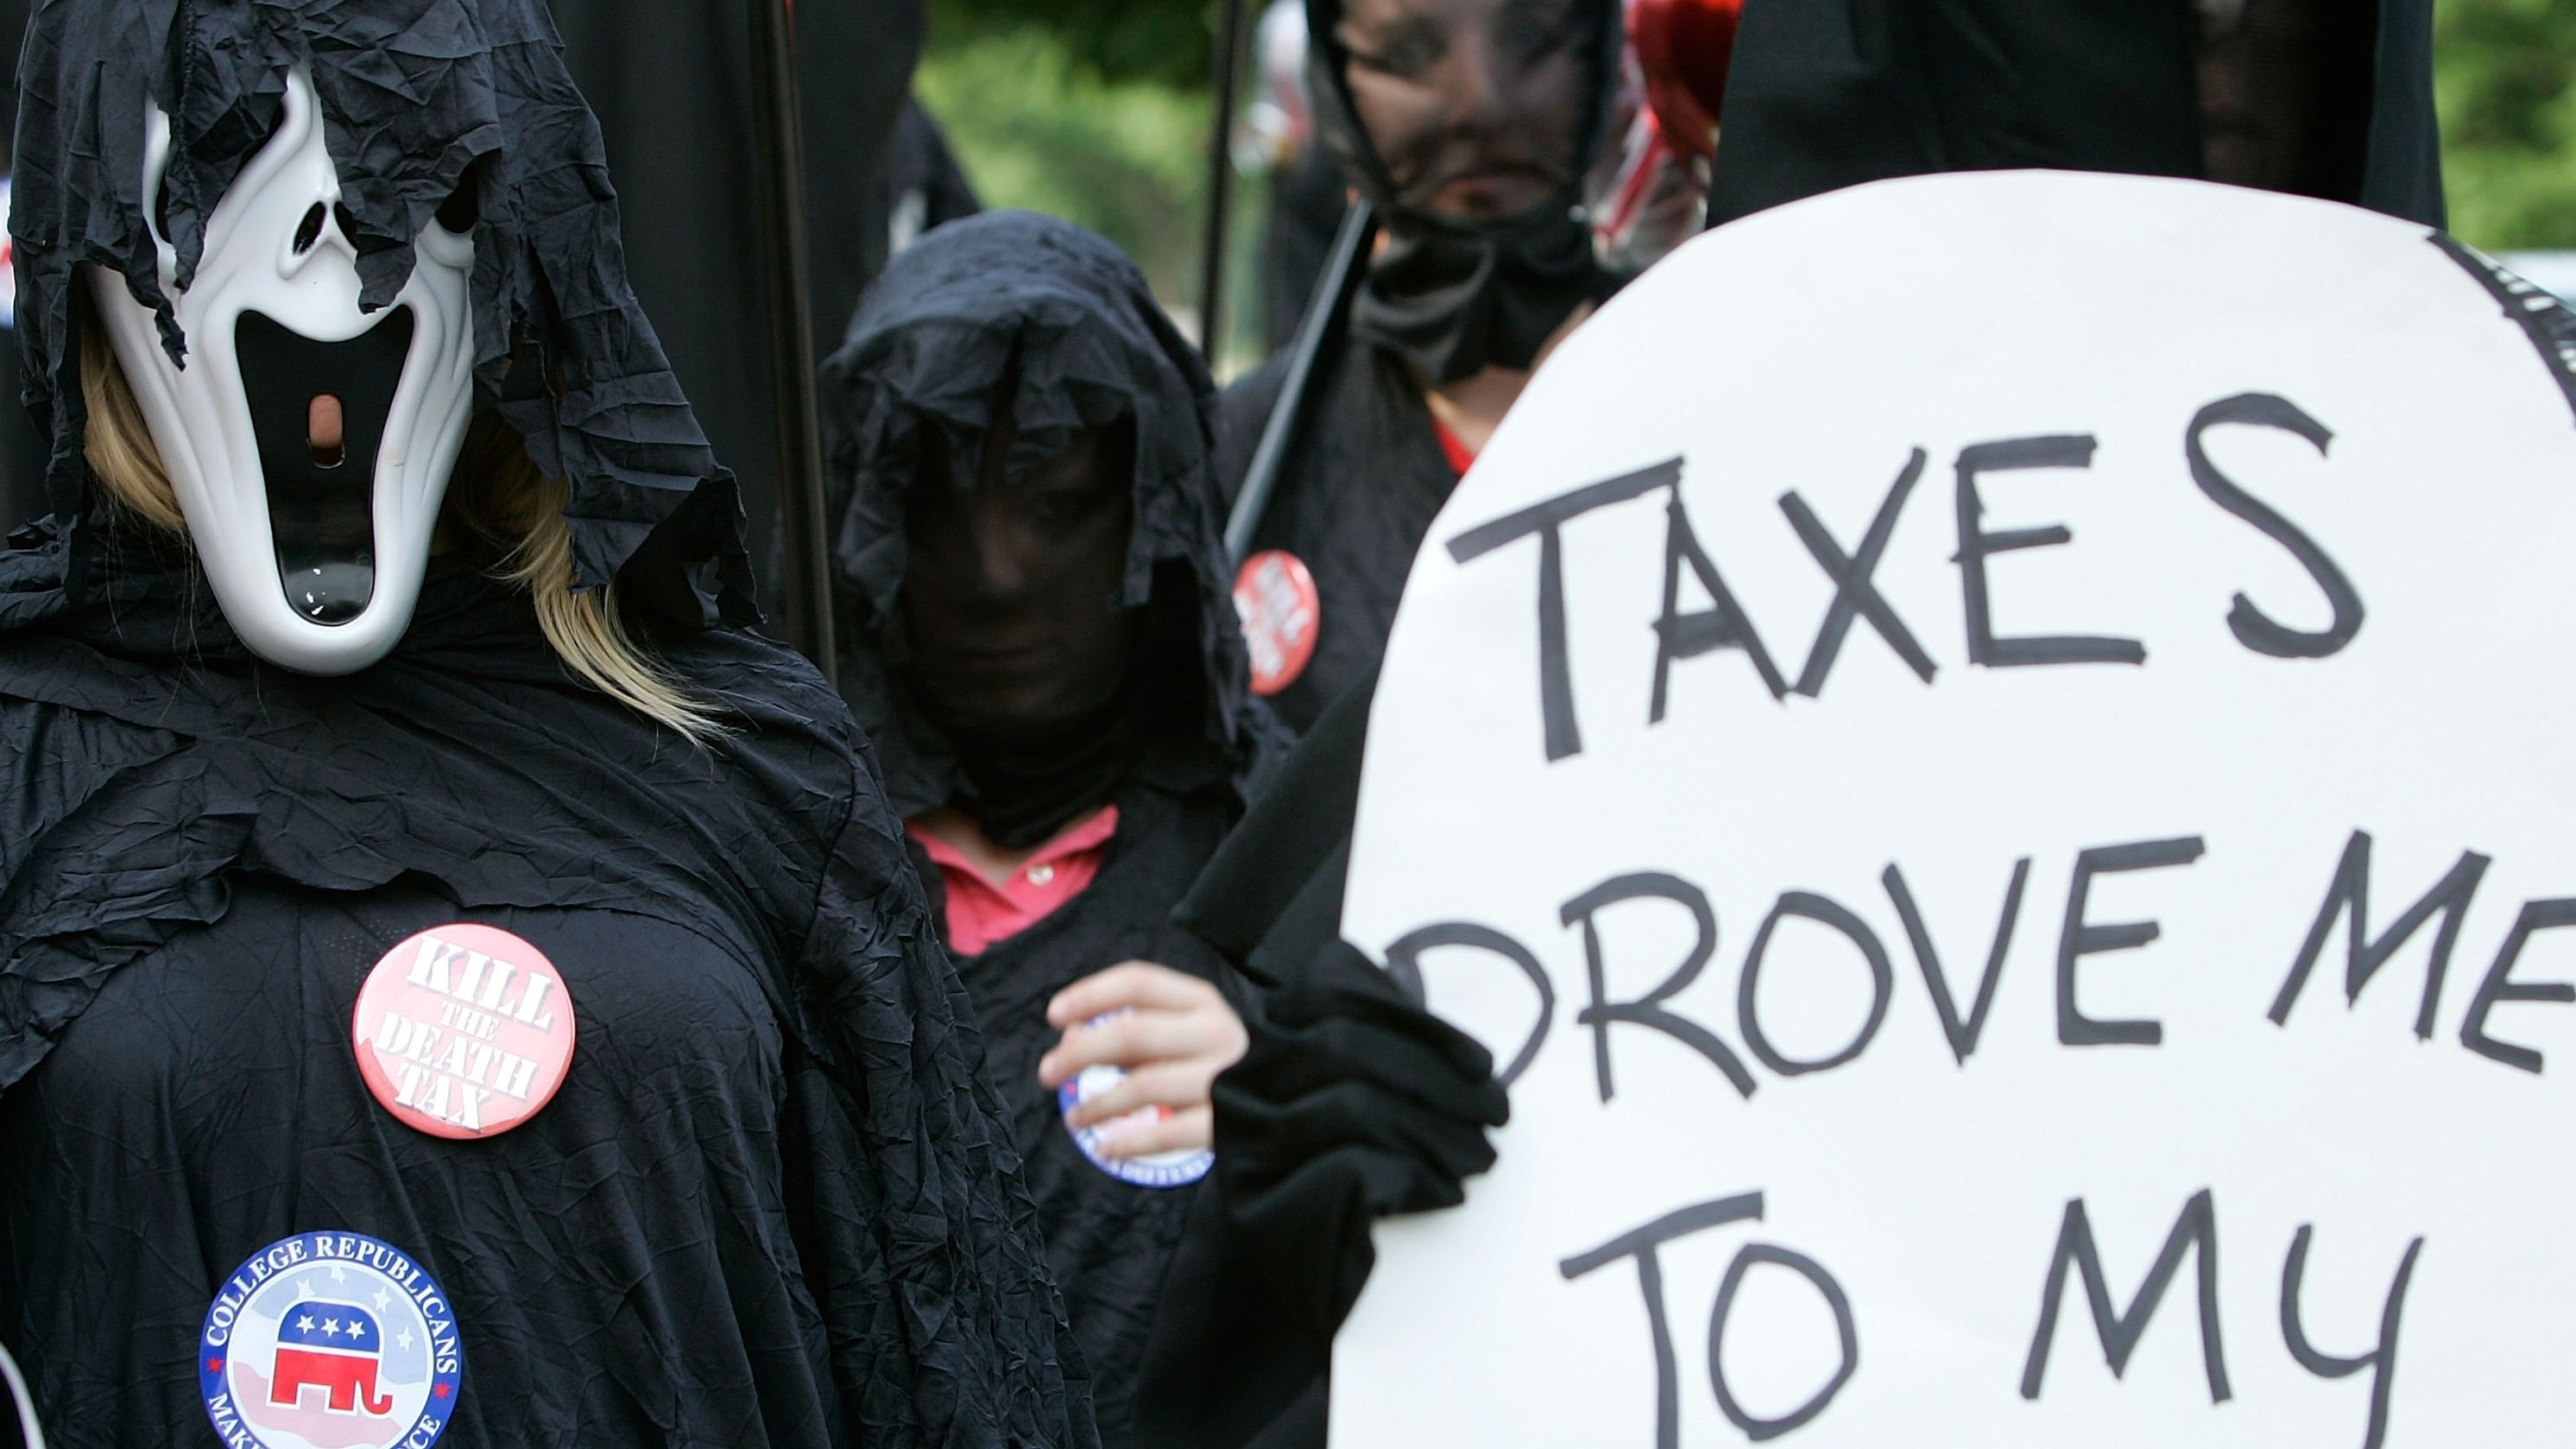 Image for As GOP Lawmakers Eye Cutting Estate Tax, Will They Increase Income Inequality? Article